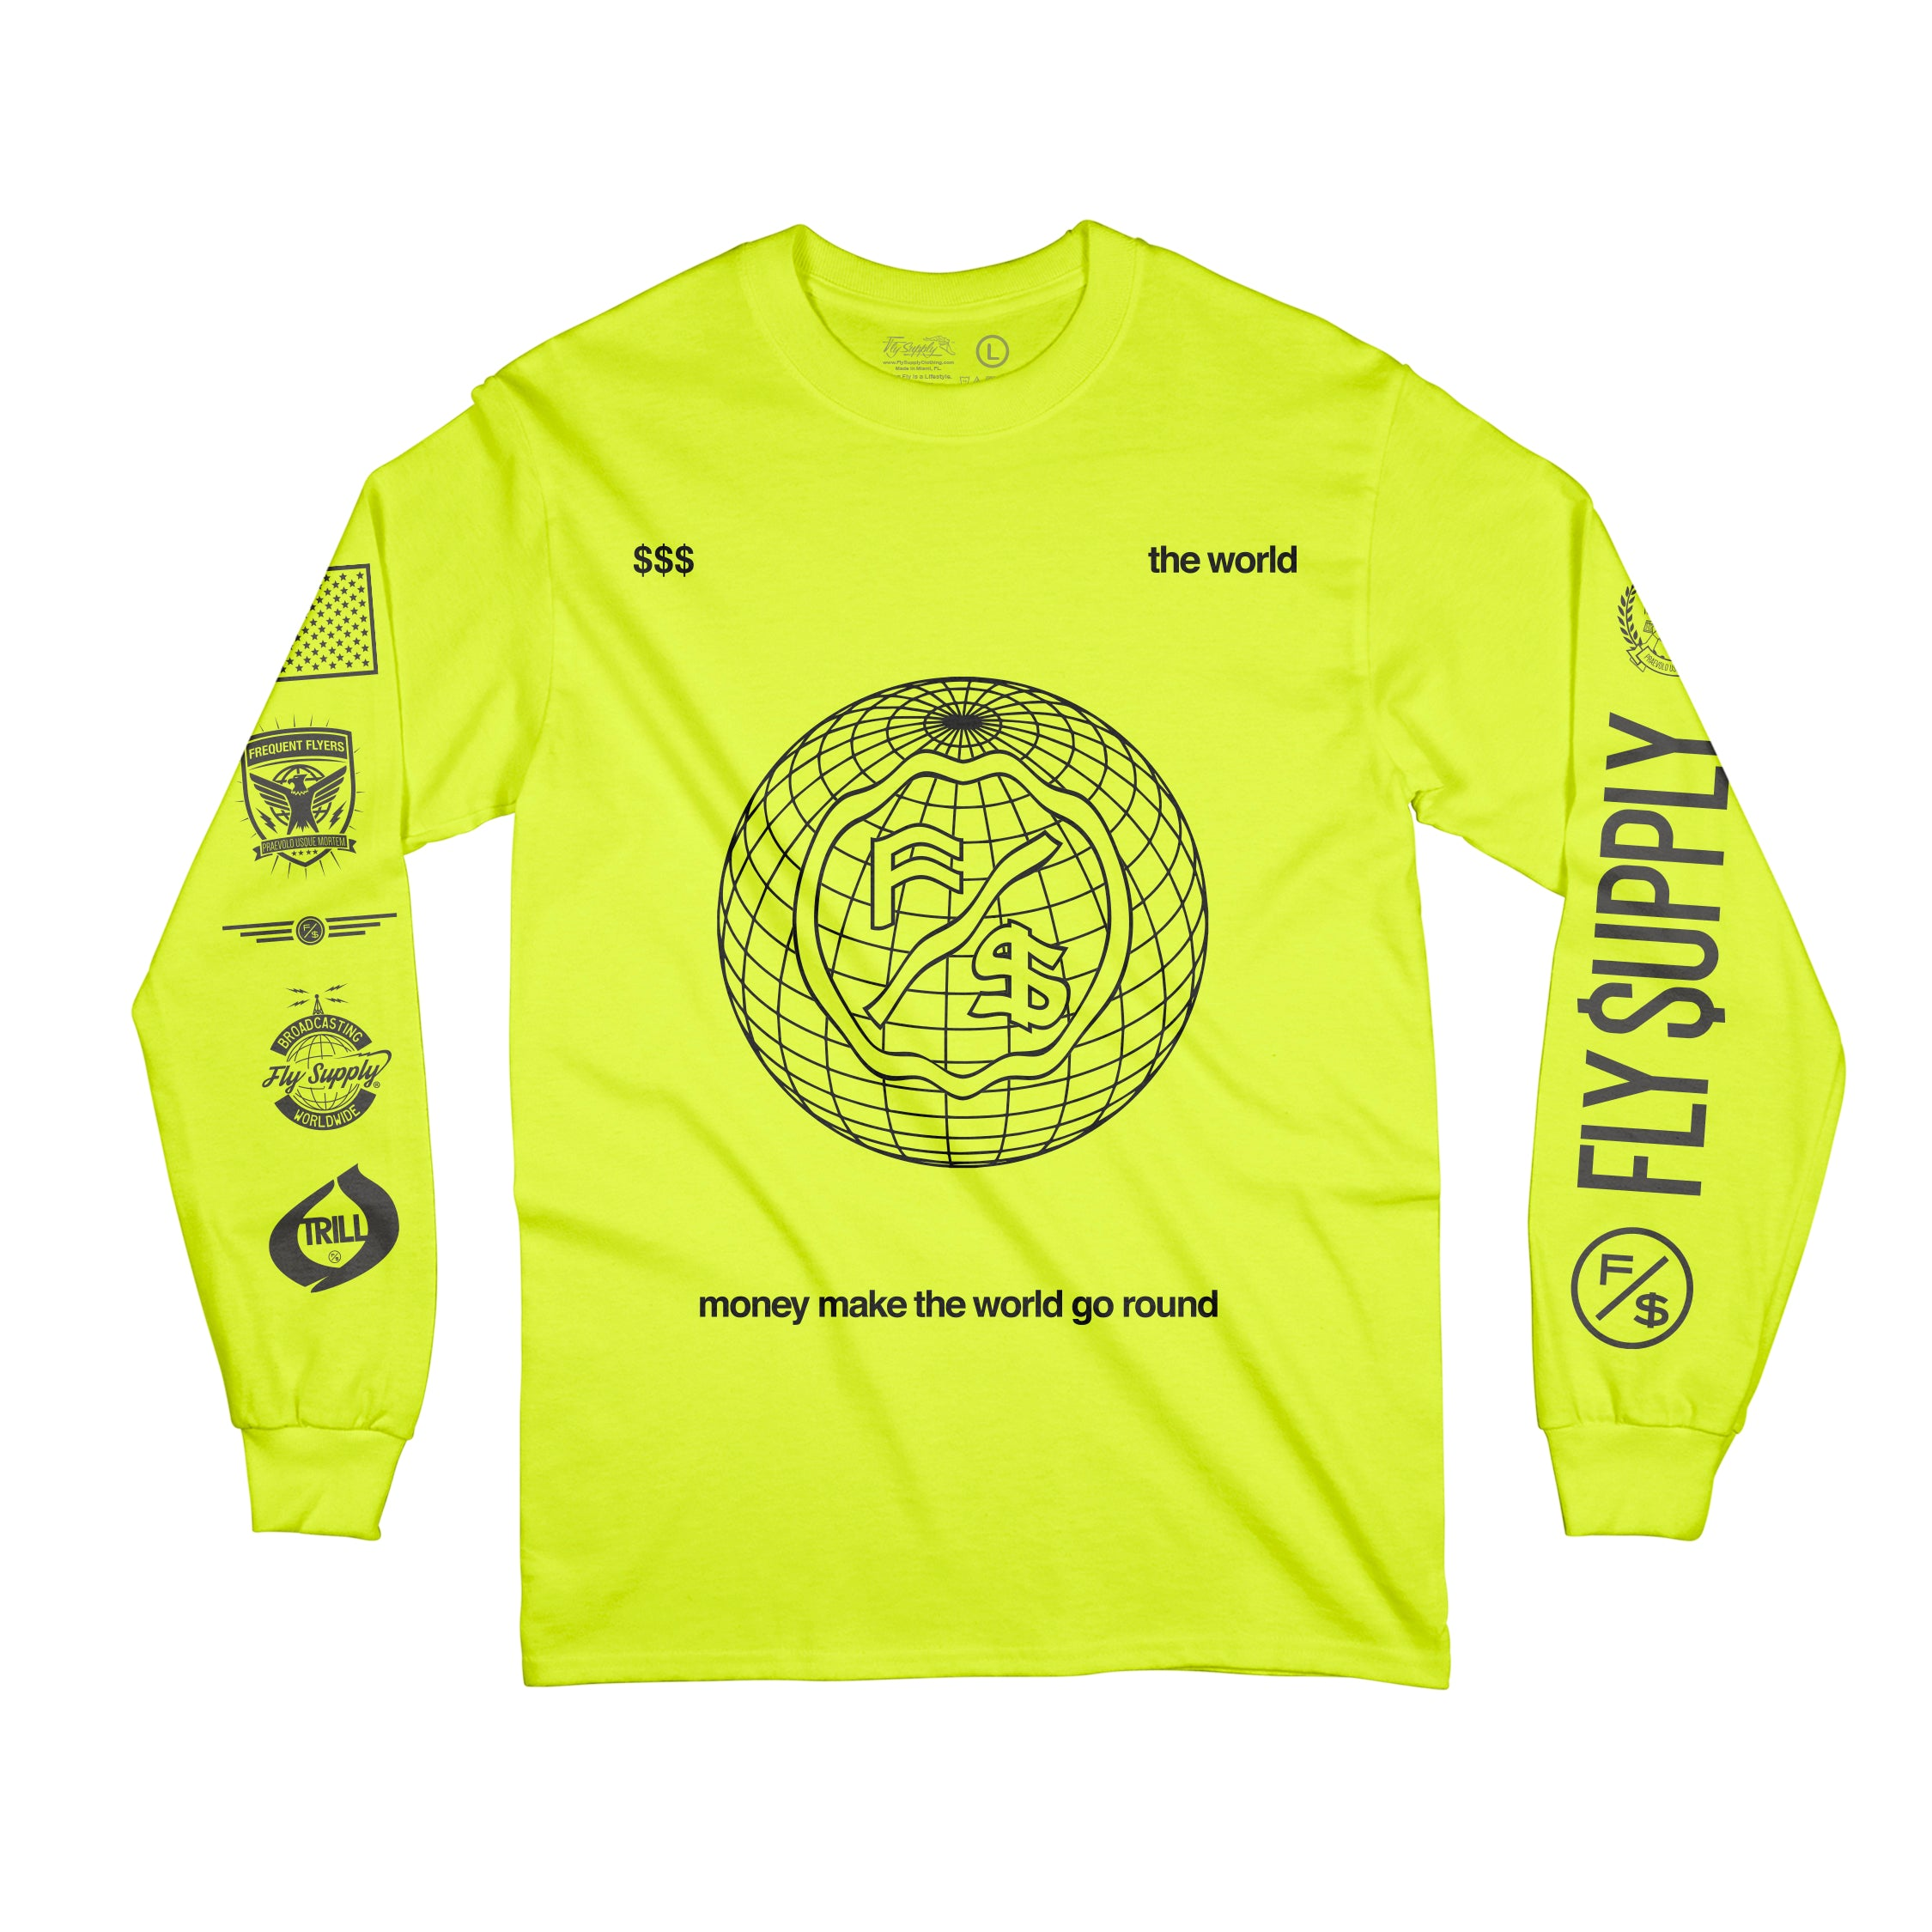 The World (L/S Tee)